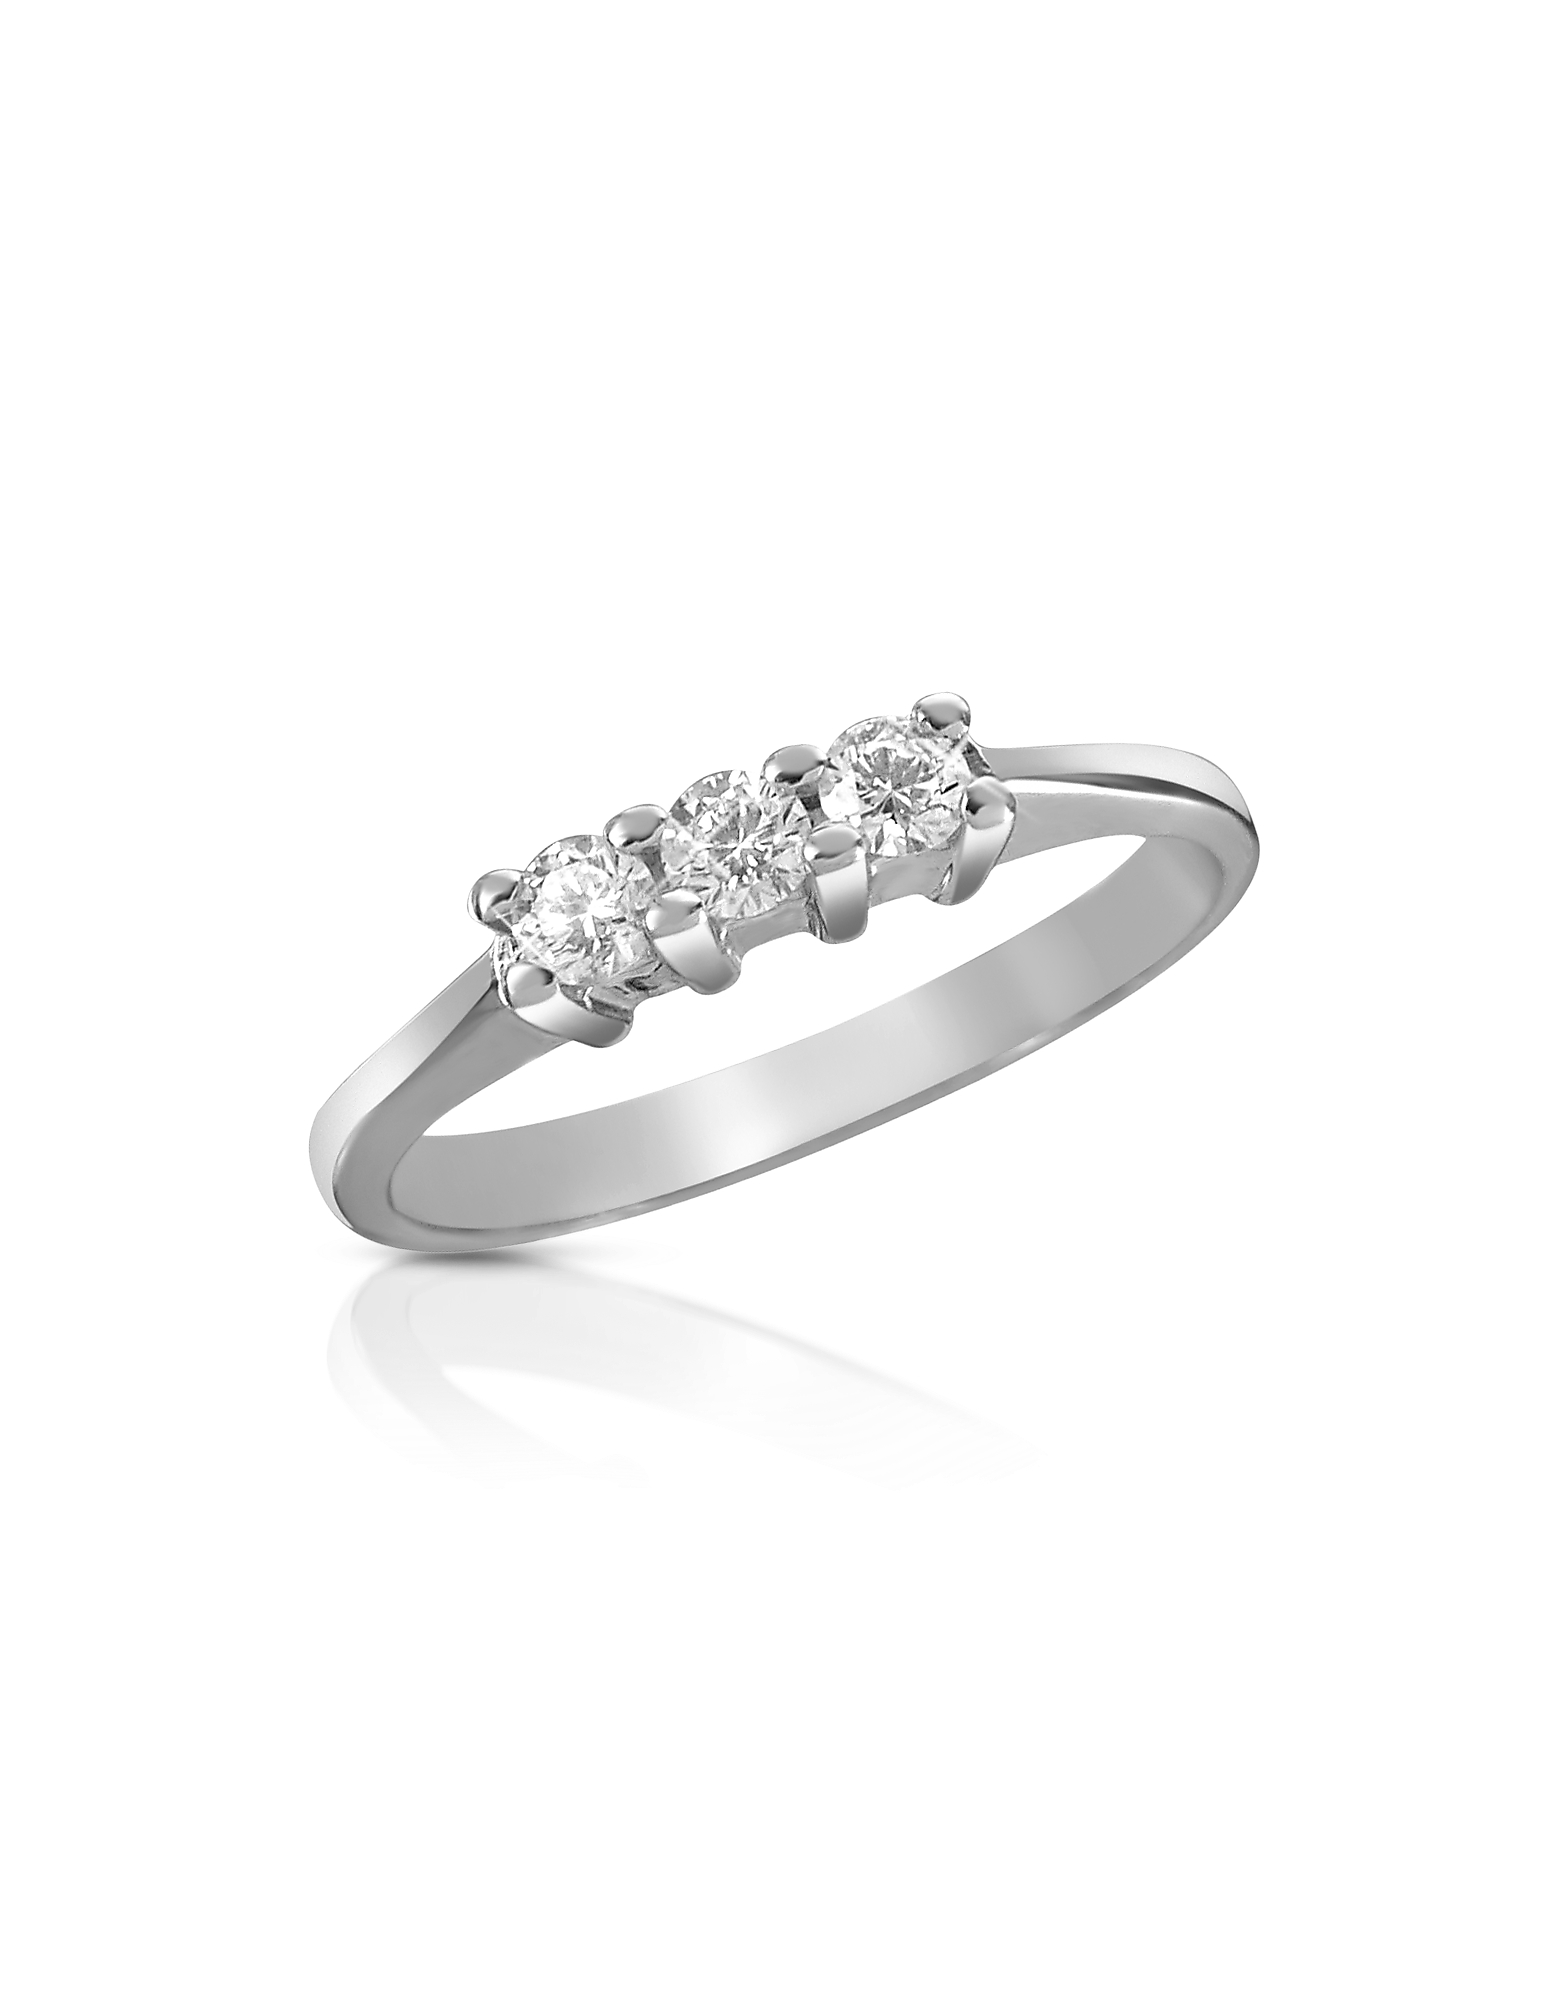 Forzieri Rings, 0.10 ct Three-Stone Diamond 18K Gold Ring